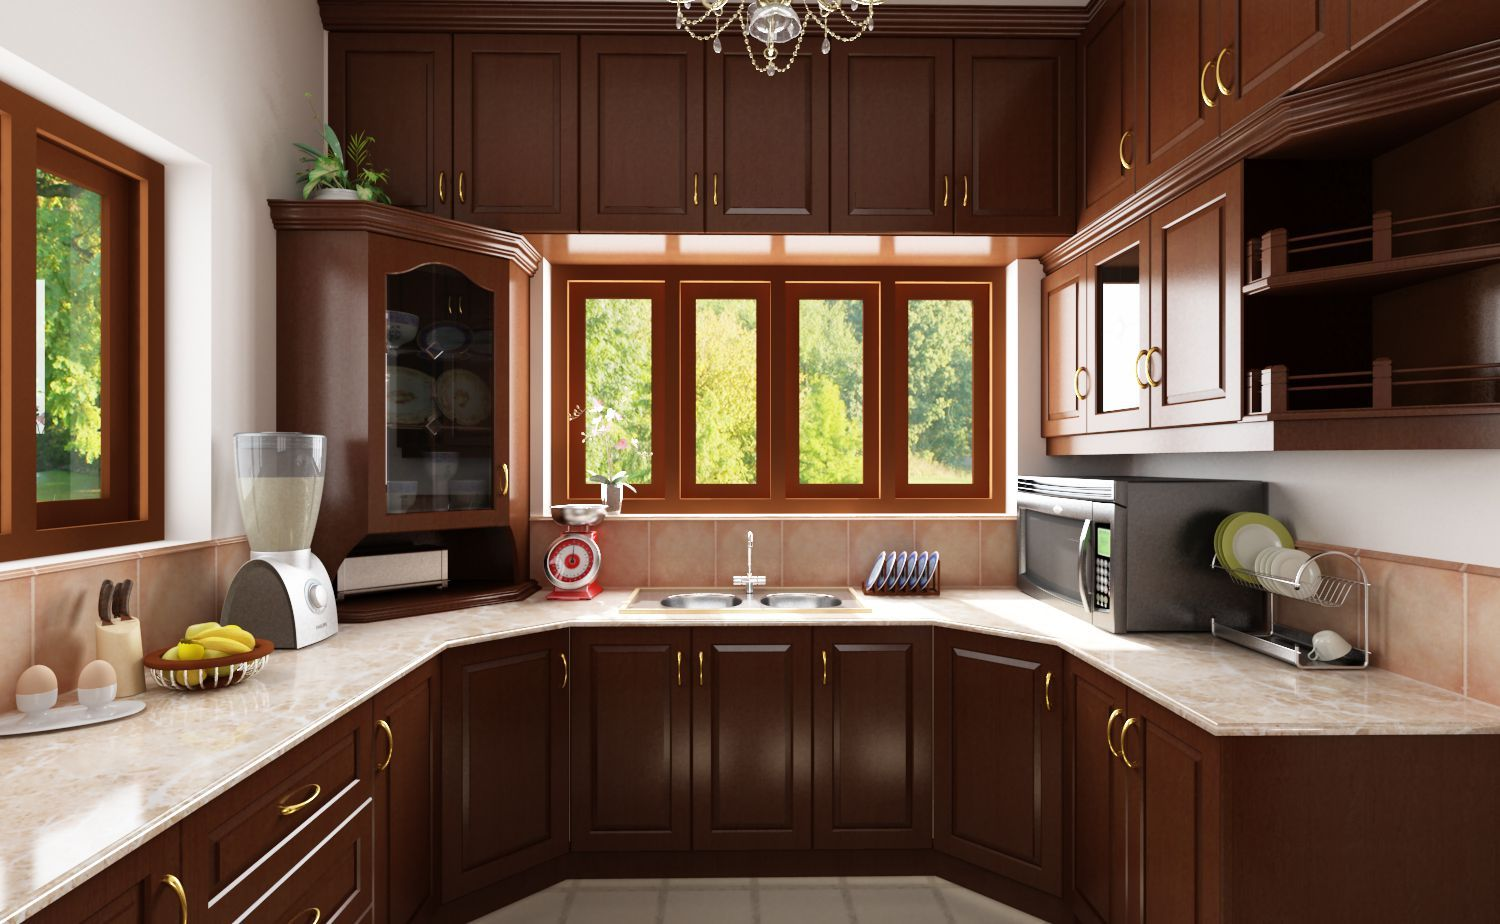 62a8e72e8dbb2518d2d93ca44a62efdd - Download Small House Simple Low Cost Indian Kitchen Design Background